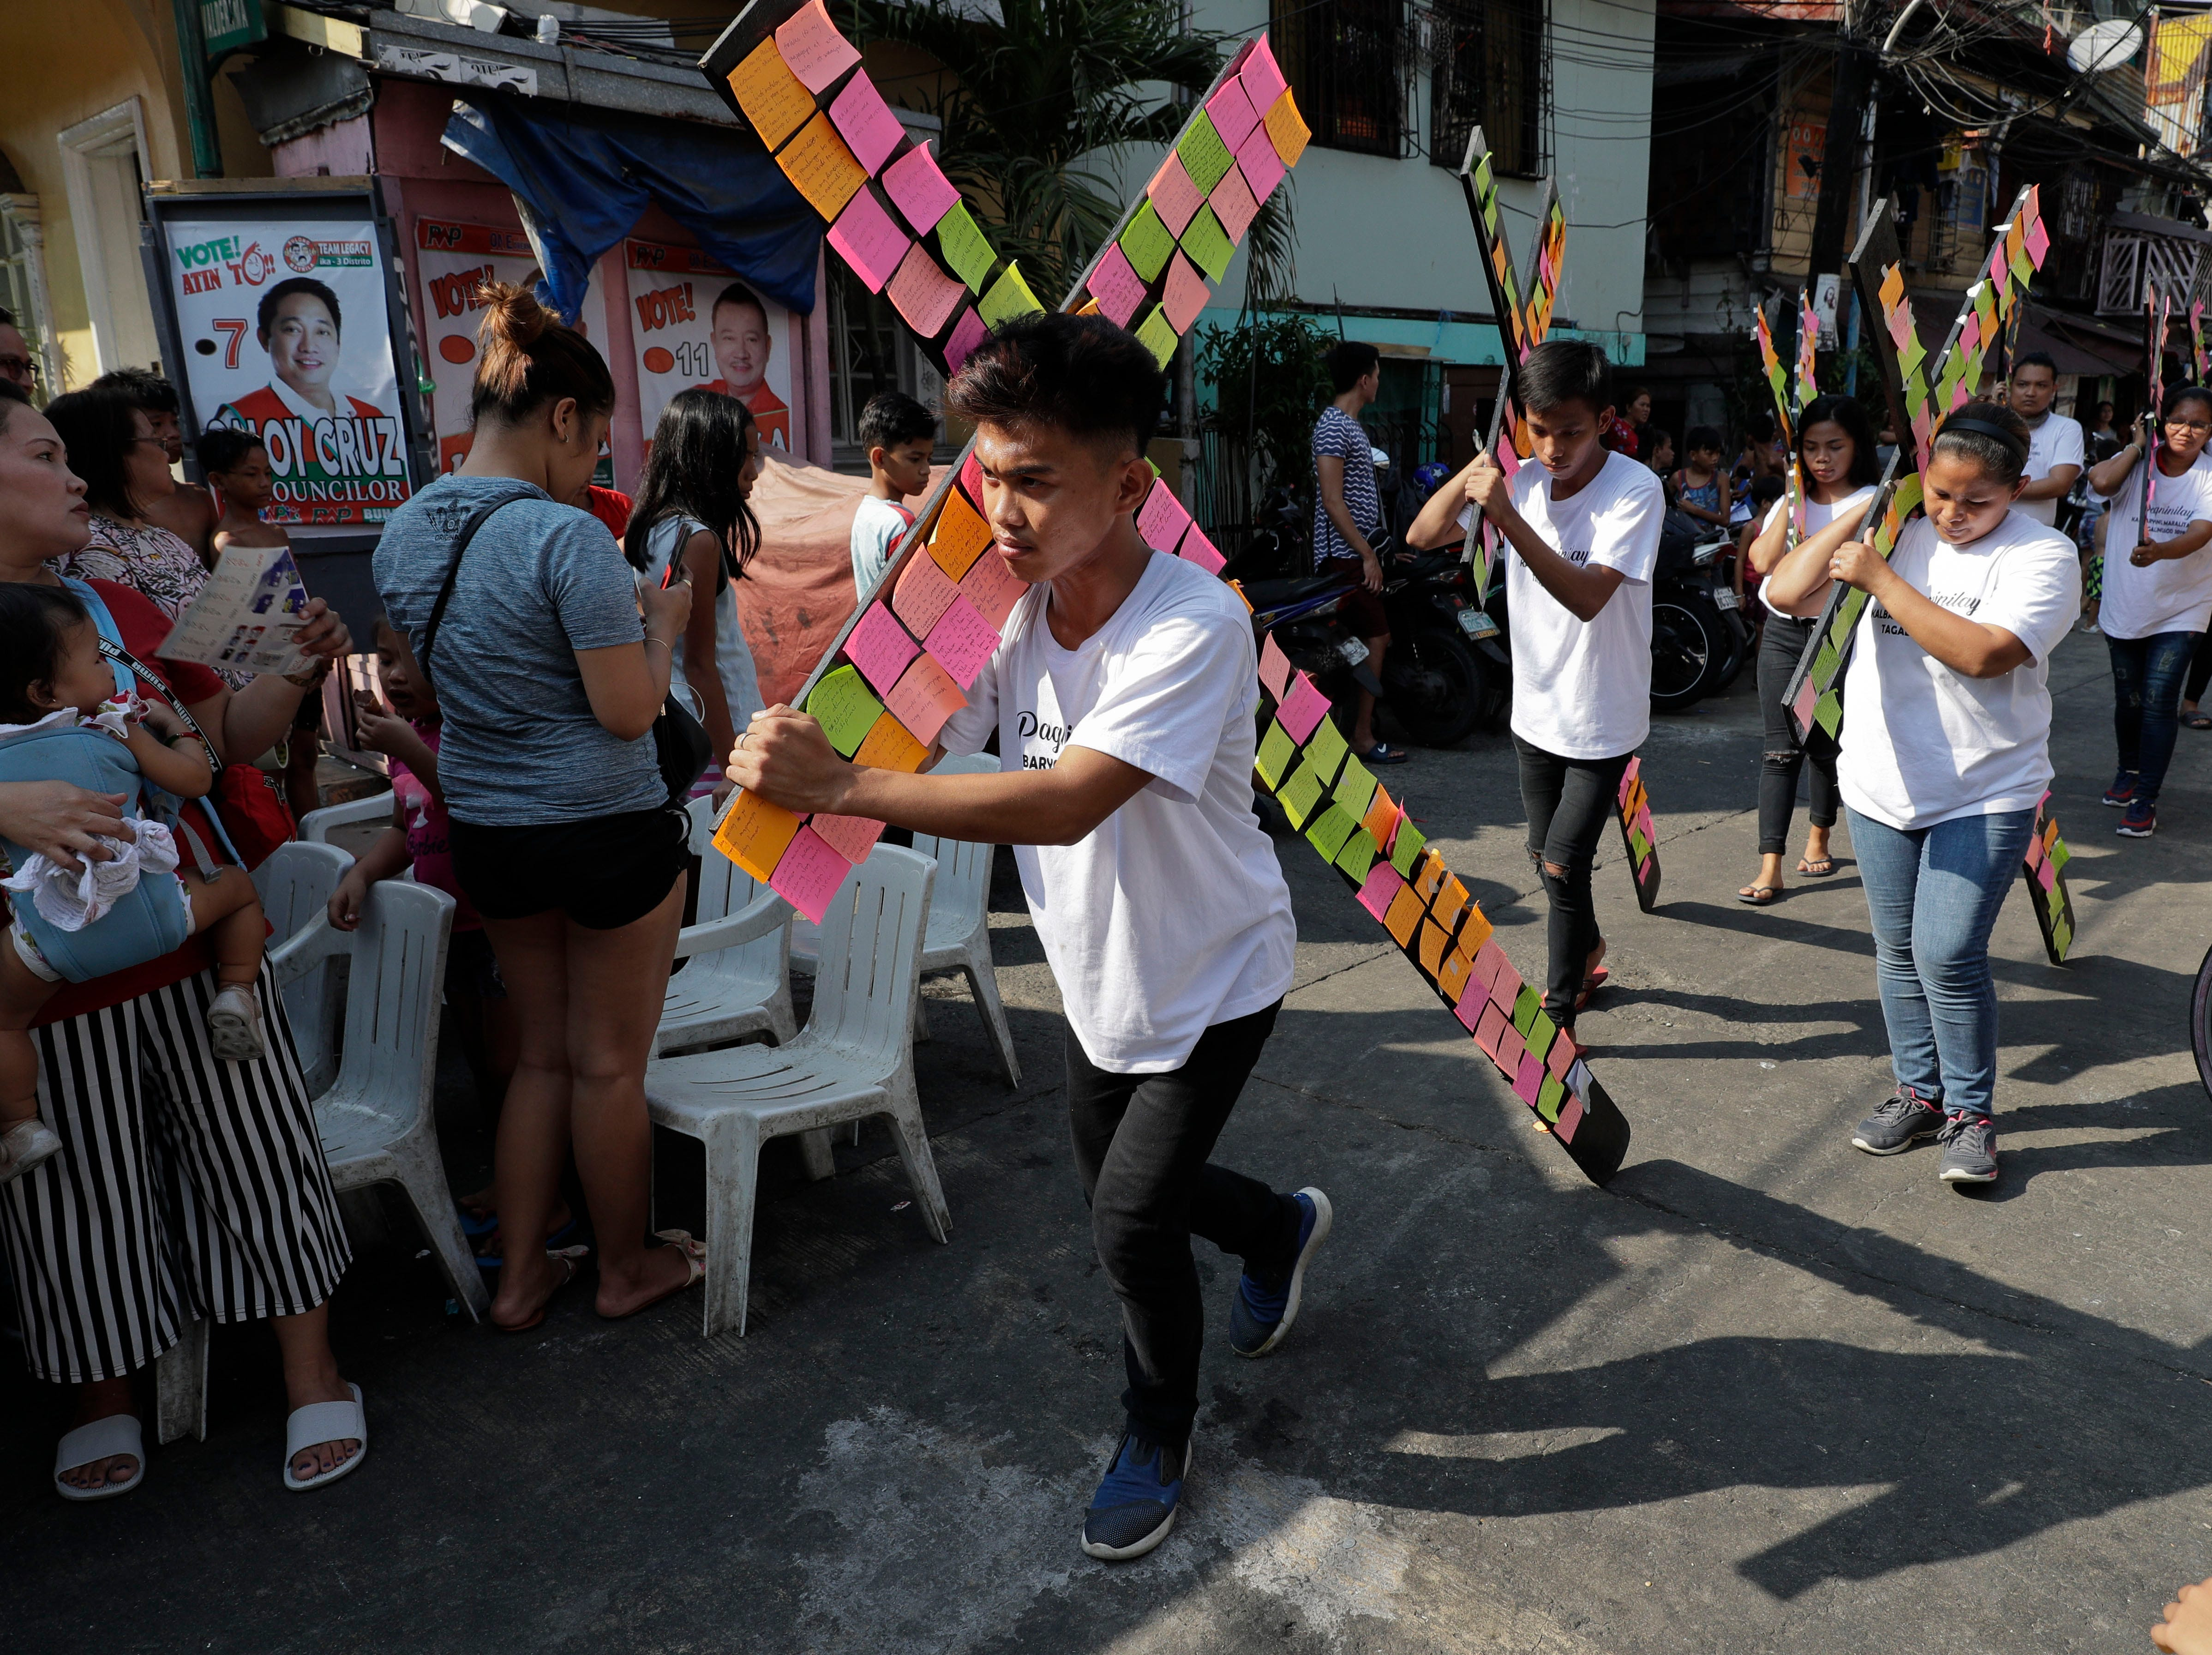 Protesters carry a wooden cross with paper notes of the wishes, concerns and problems of the urban poor during a rally on Holy Tuesday, April 16, 2019. The group said the event is held in a slum area to dramatize the plight of the urban poor under the government of Philippine President Rodrigo Duterte.